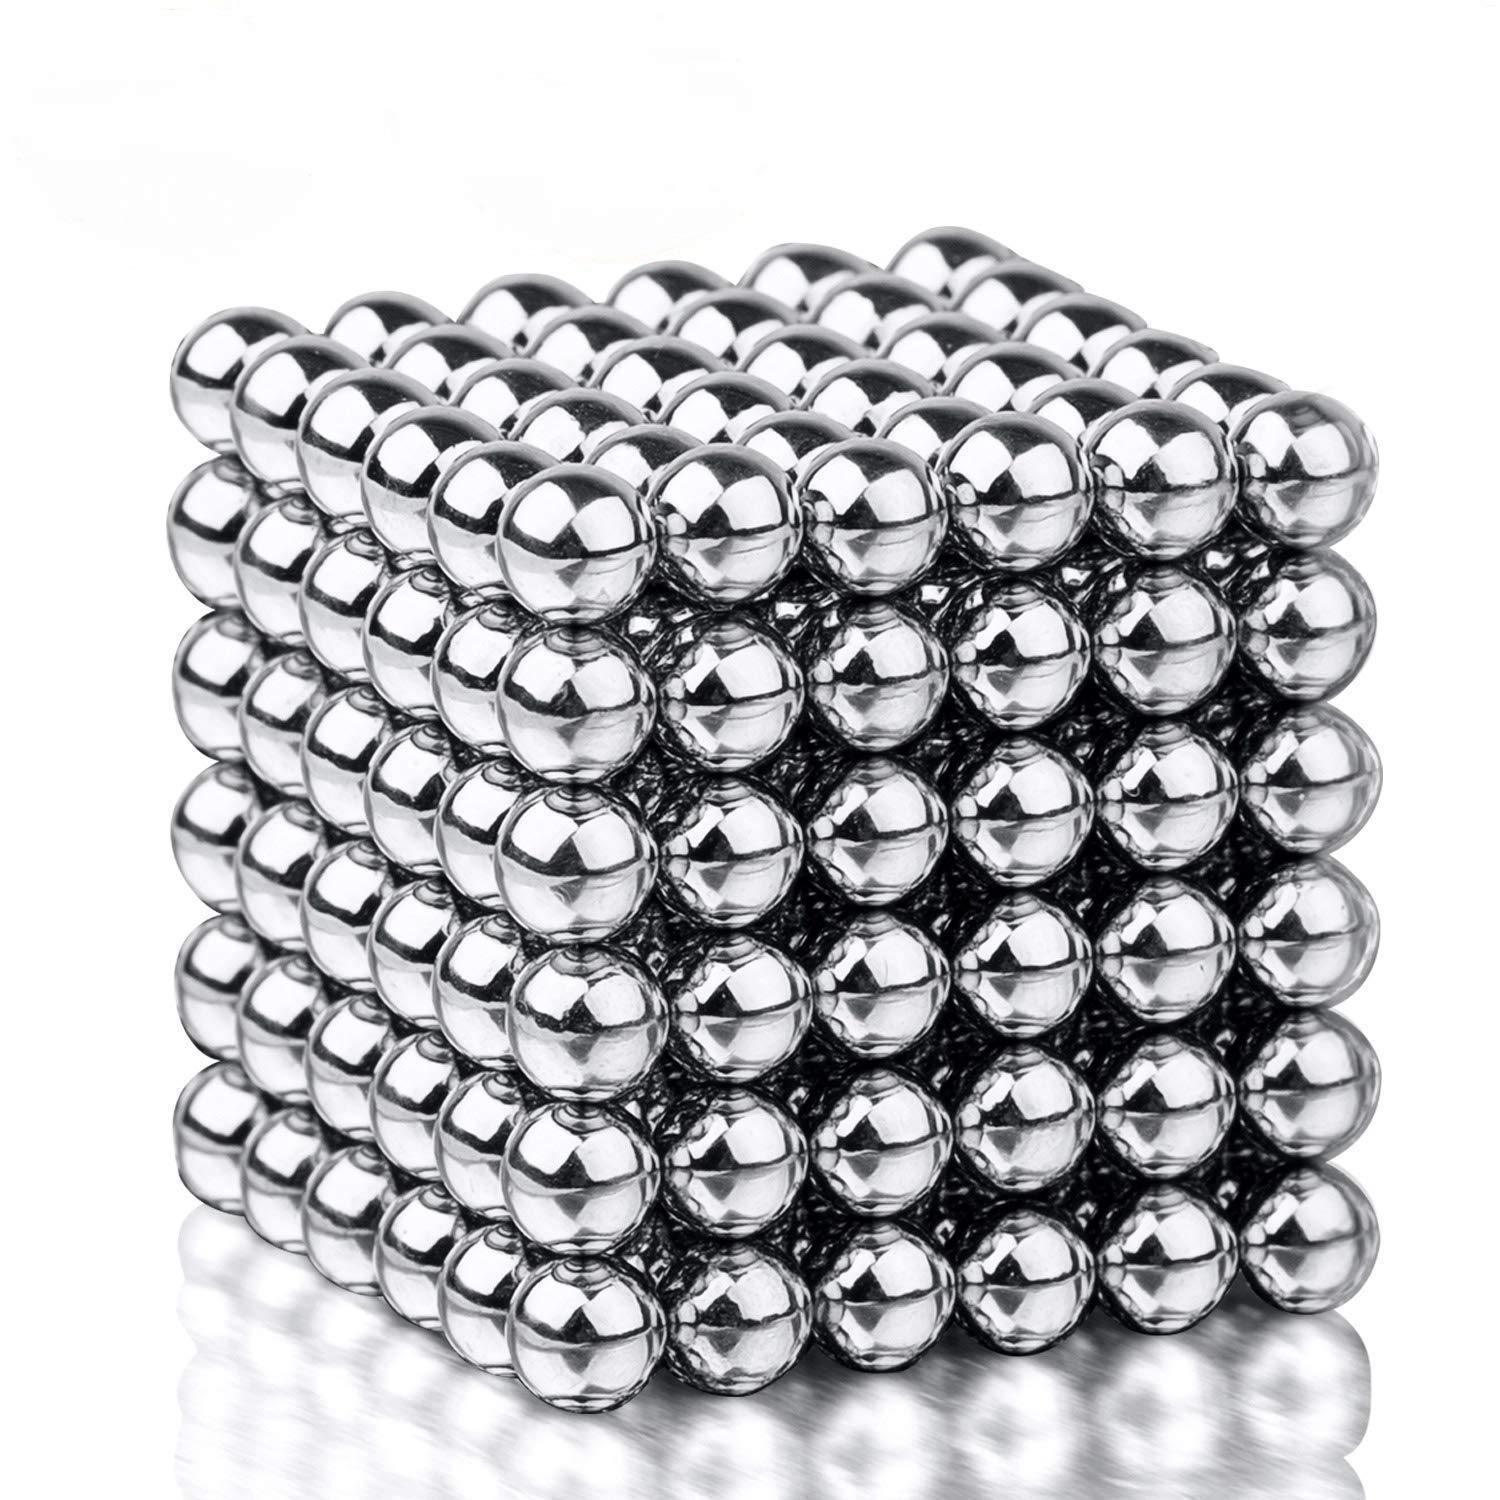 MagneBalls 5mm Magnetic Ball Sculpture Toy- Perfect for Crafts, Jewelry, Education and Intelligence Development. Fidget Cube Provides Relief for Office Stress, ADHD, Autism, and Anxiety (Chrome)